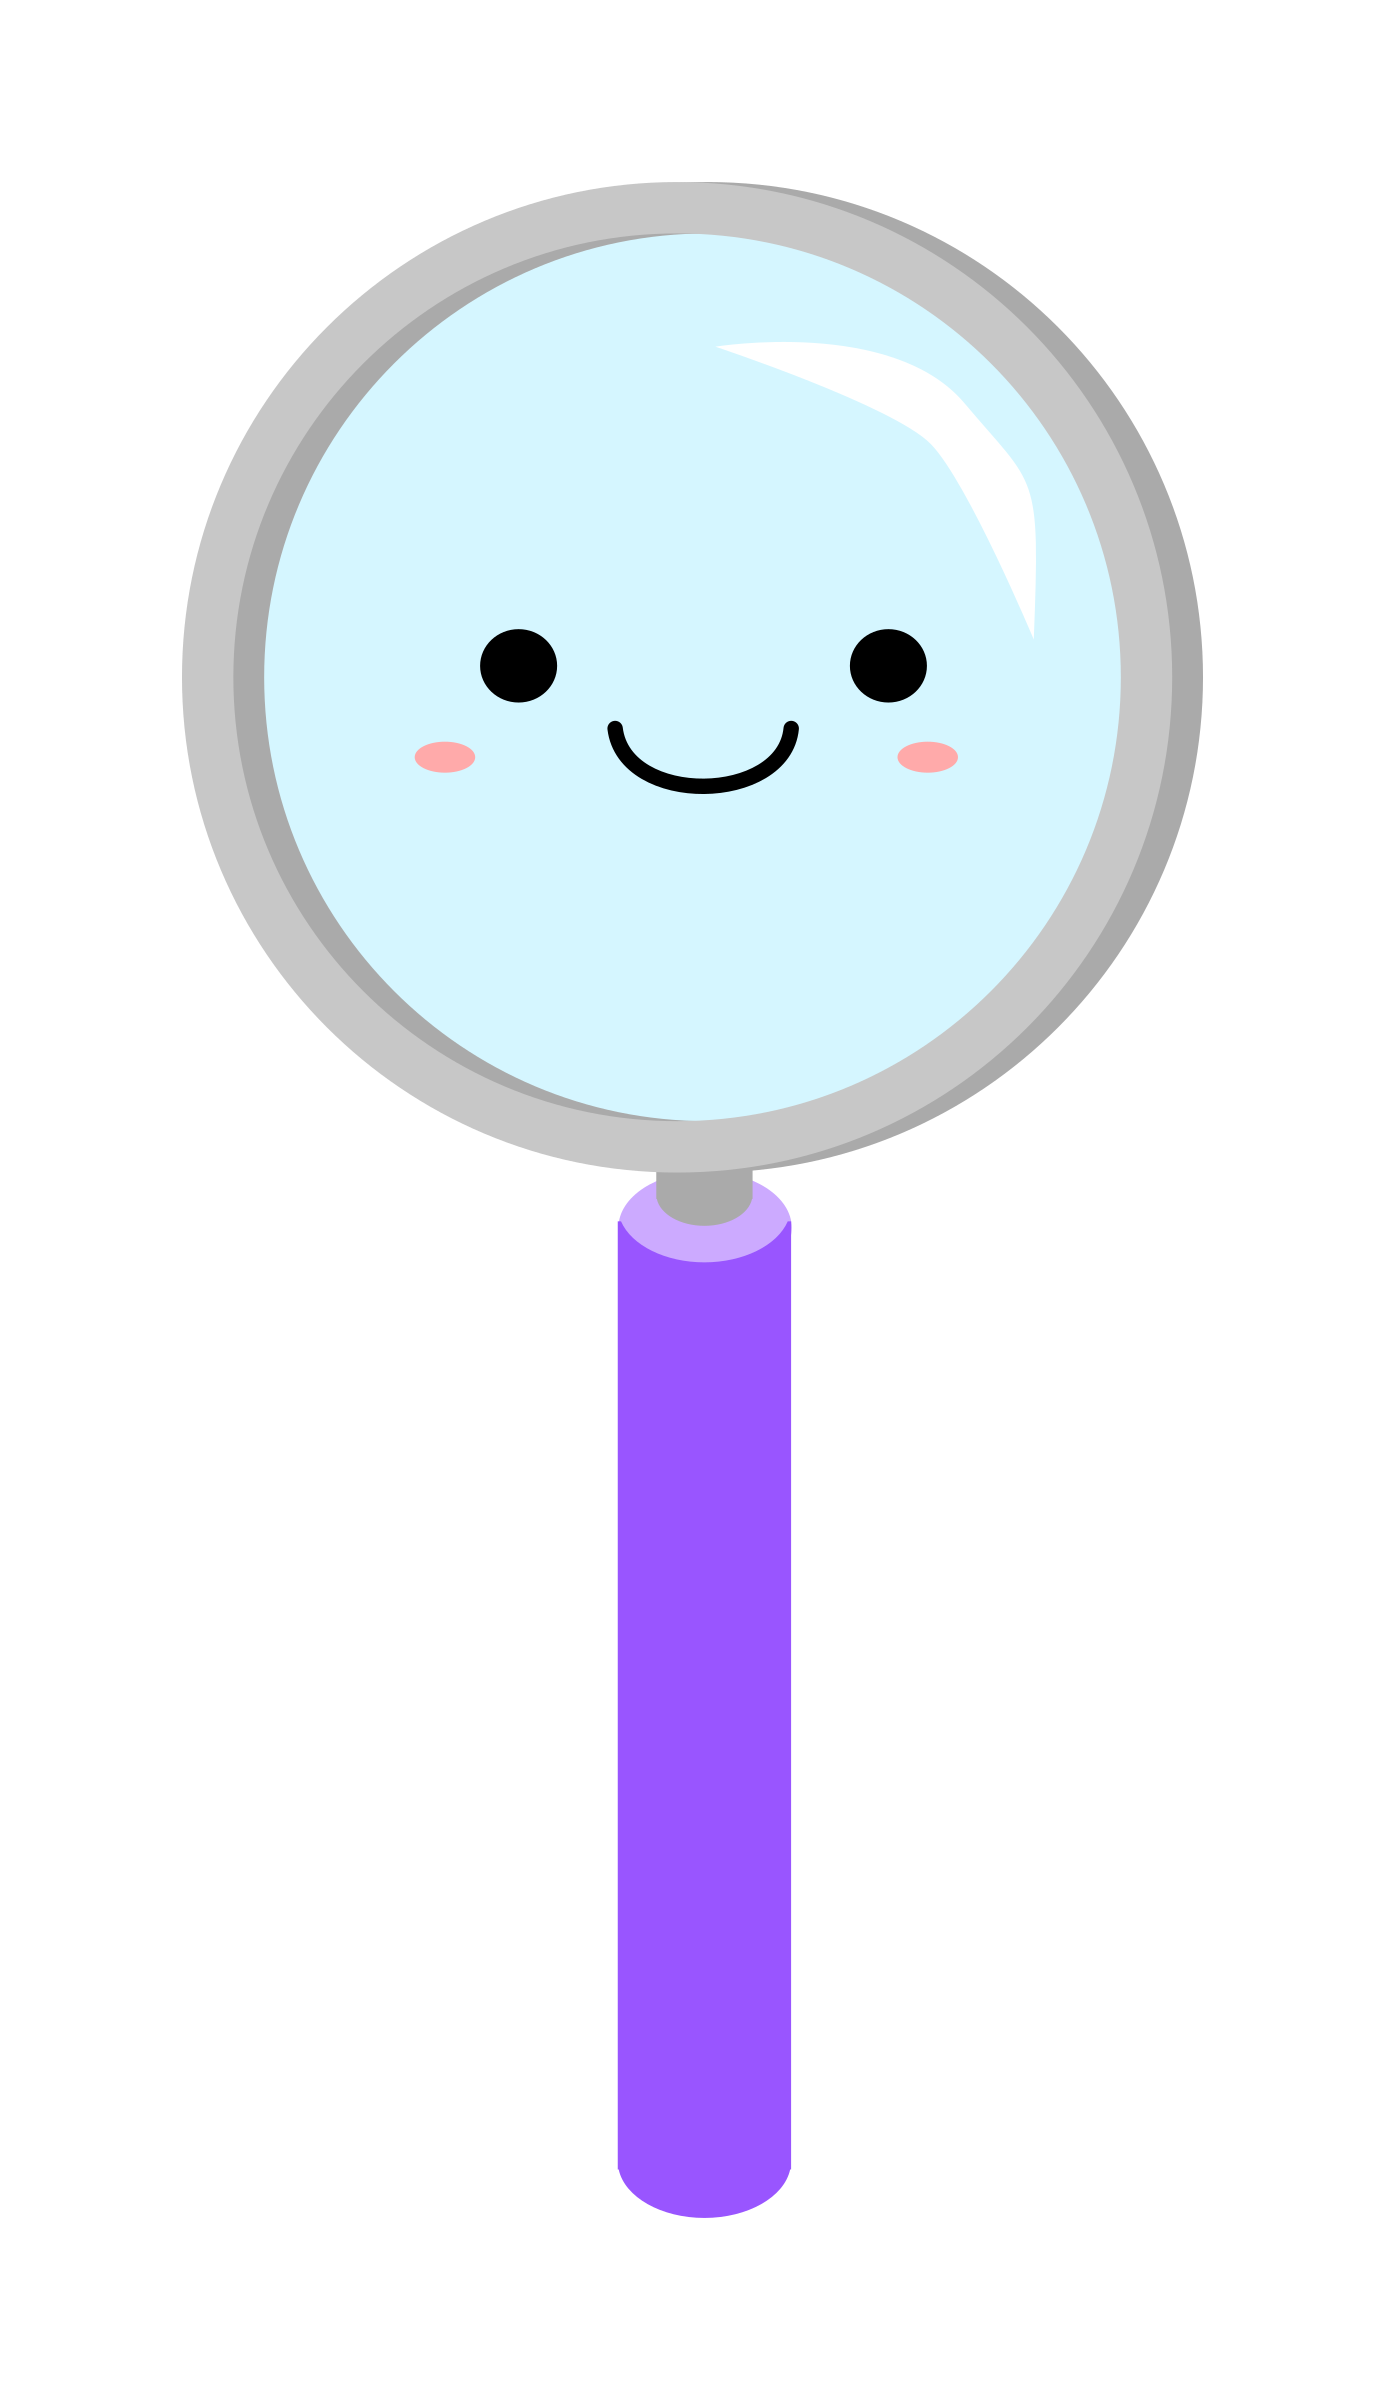 Magnifying glass icons png. Drink clipart kawaii